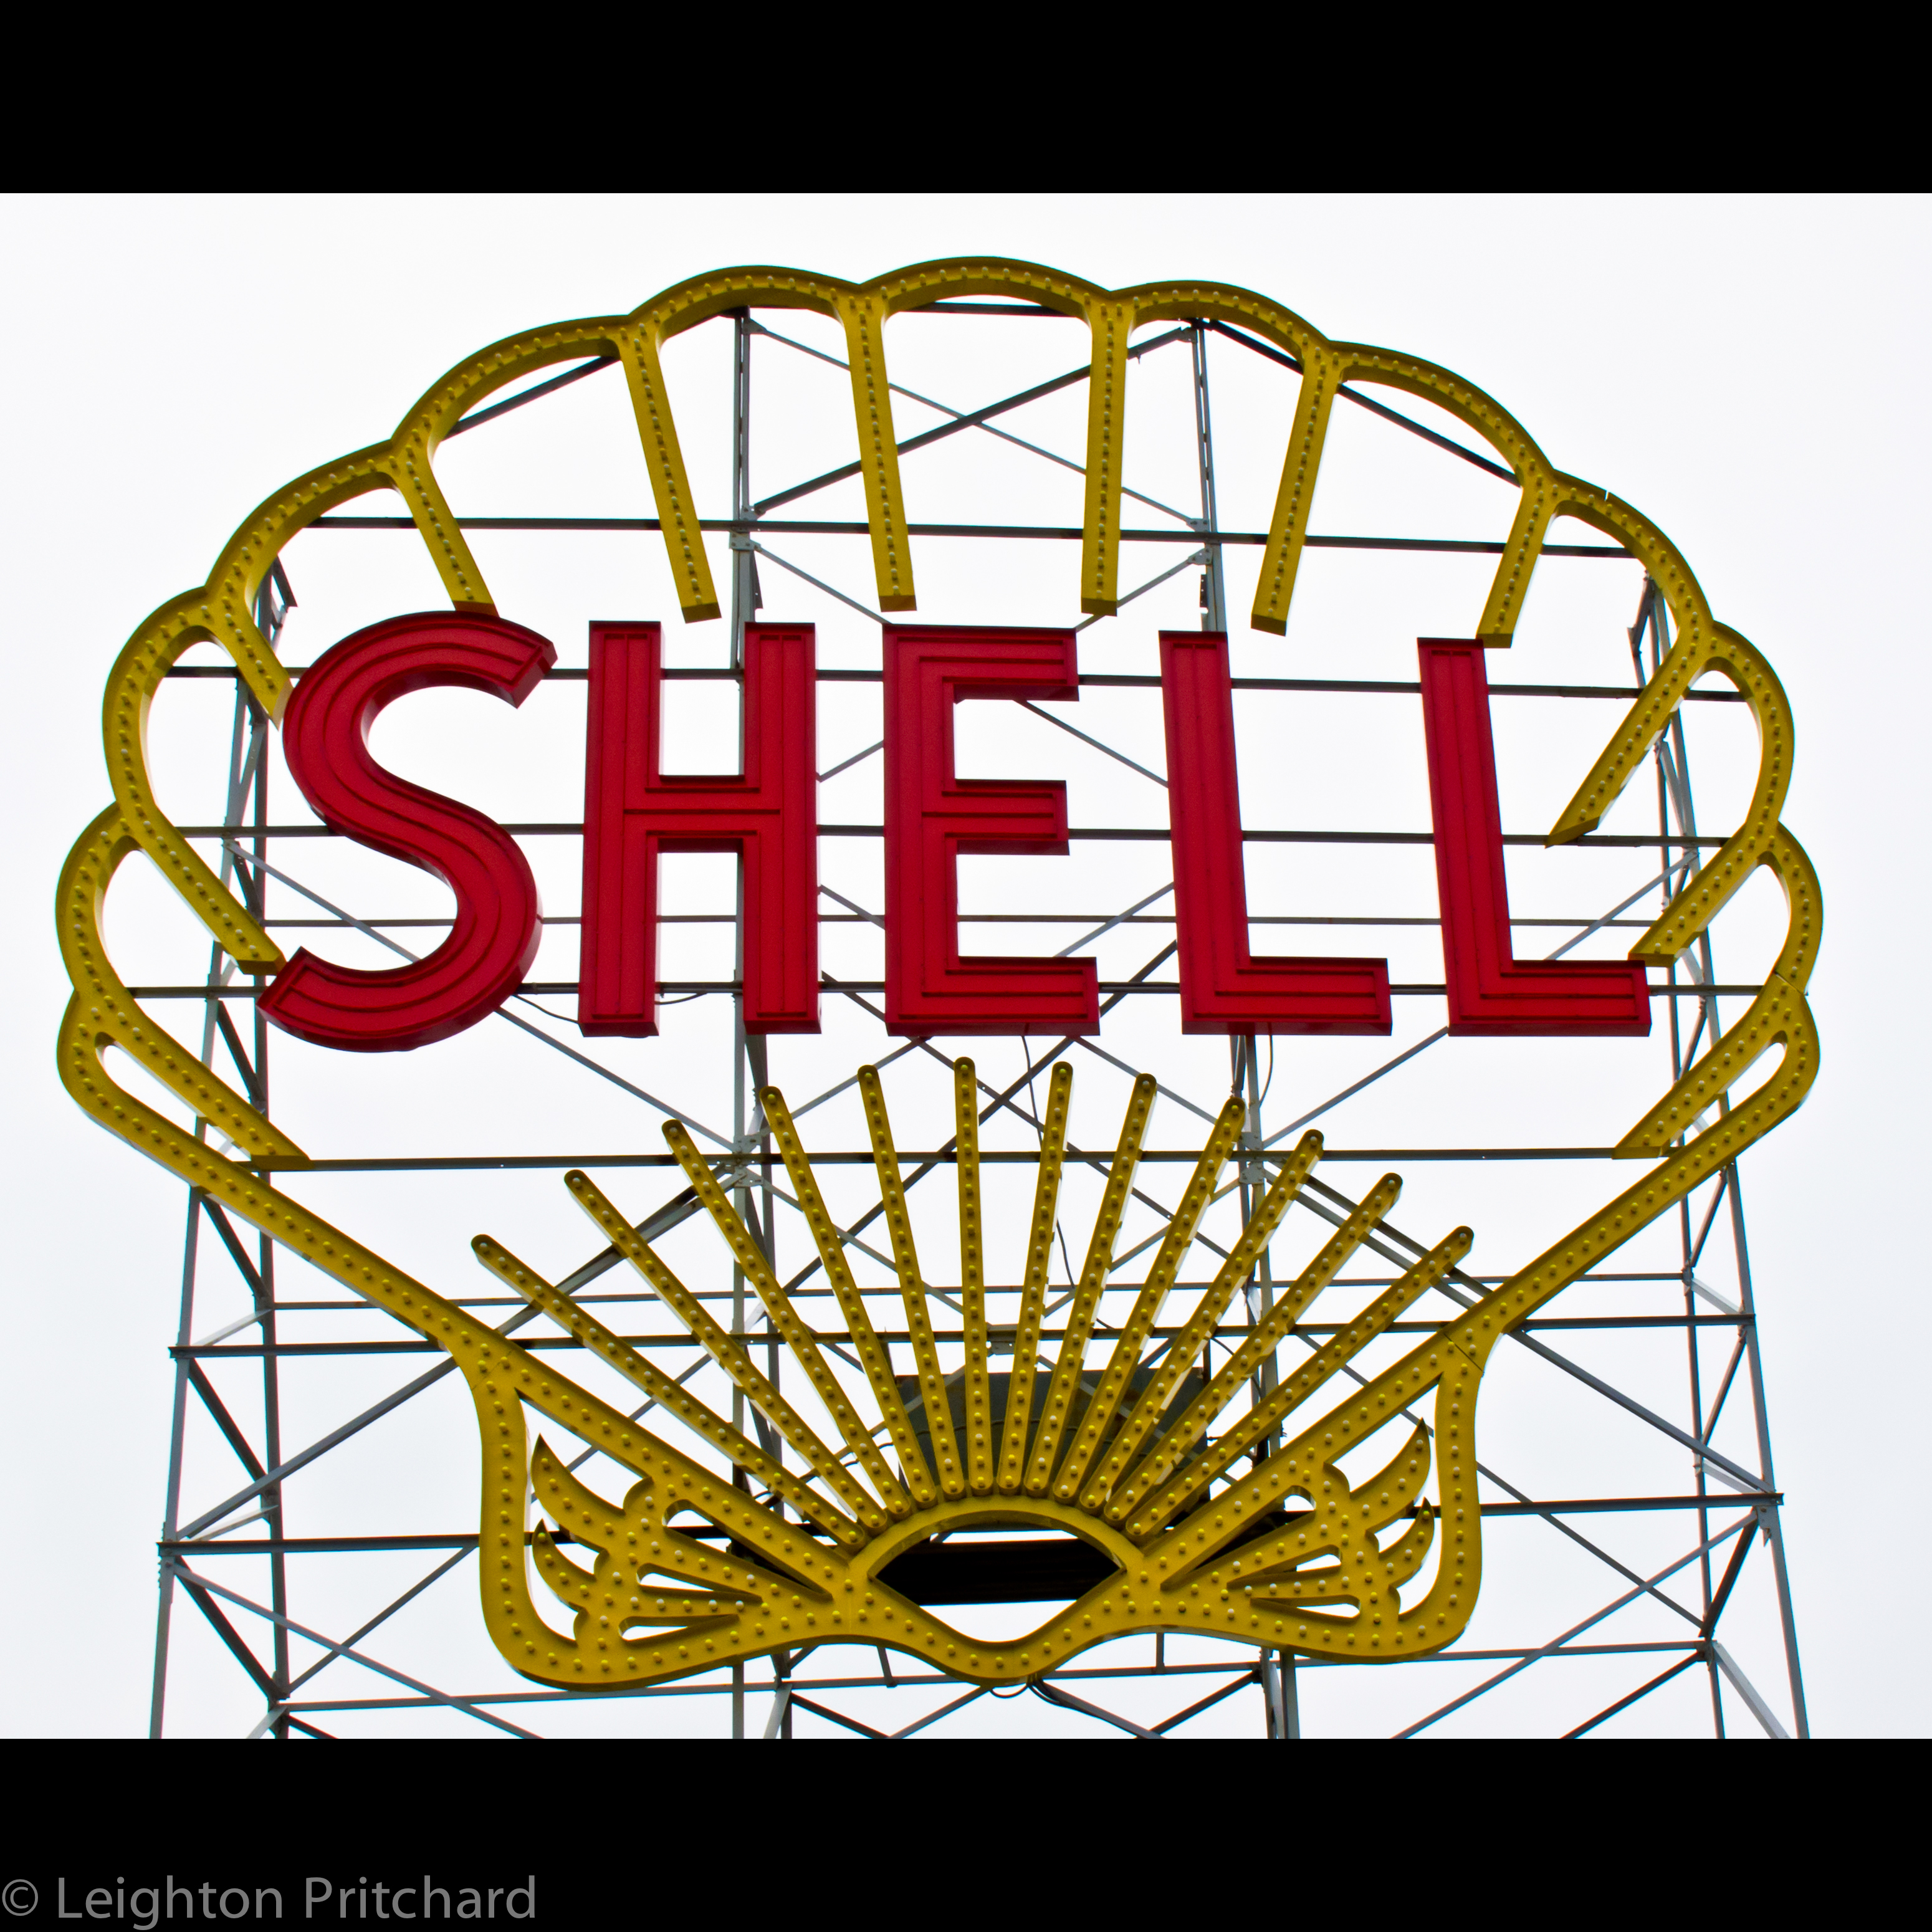 Shell Garages: Shell Garage, Magazine Beach, Cambridge MA. I Wish